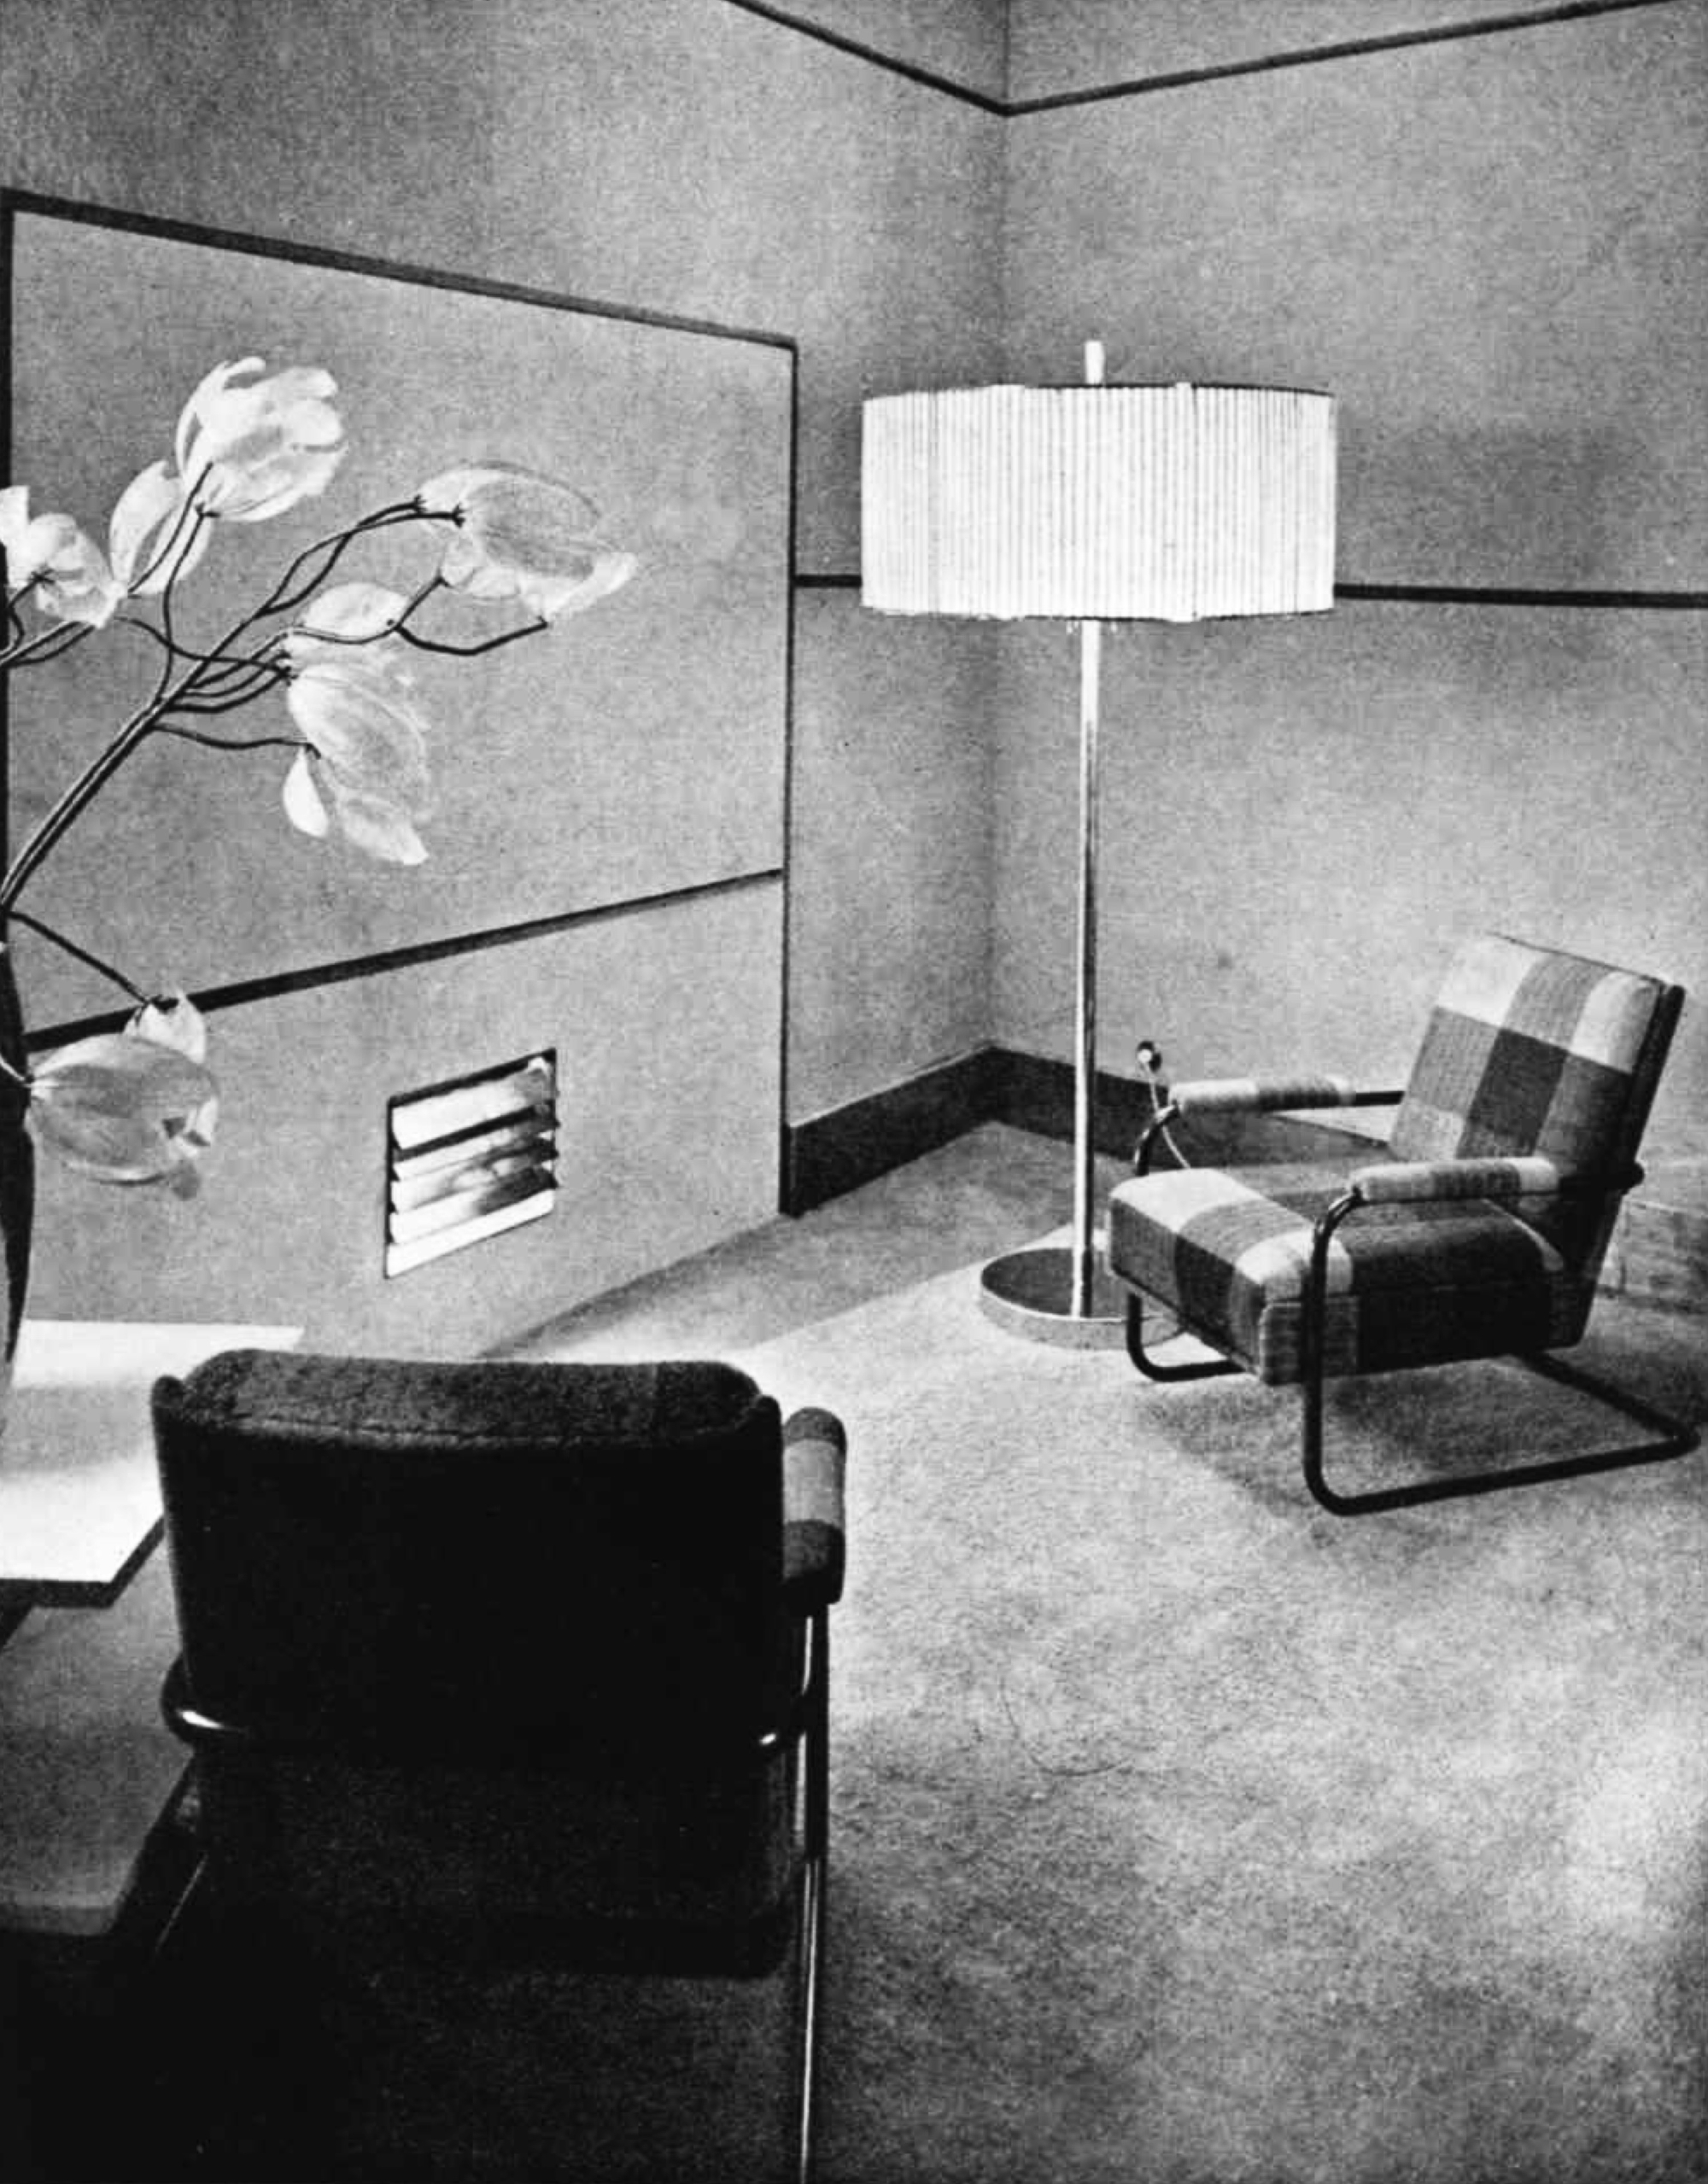 Two armchairs, a standard lamp and flowers in a cozy room